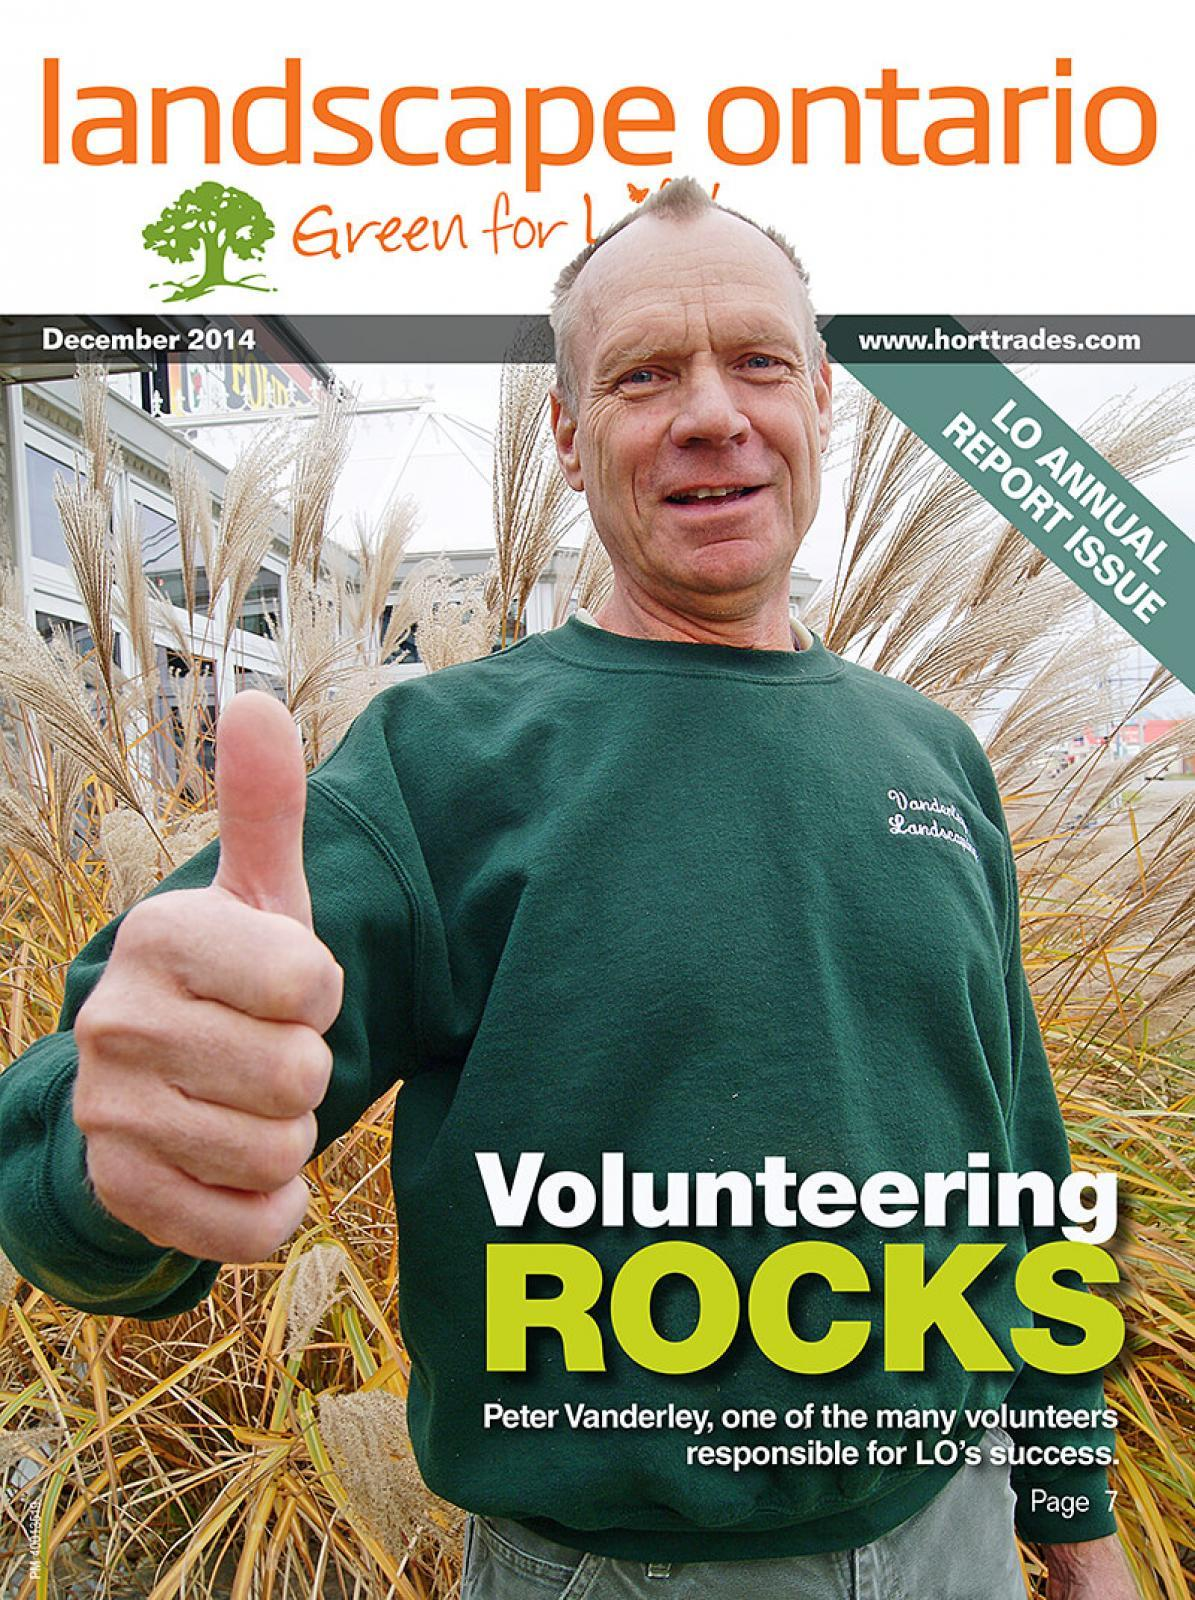 Volunteer Peter Vanderley is gives the thumbs up on the cover of this issue.